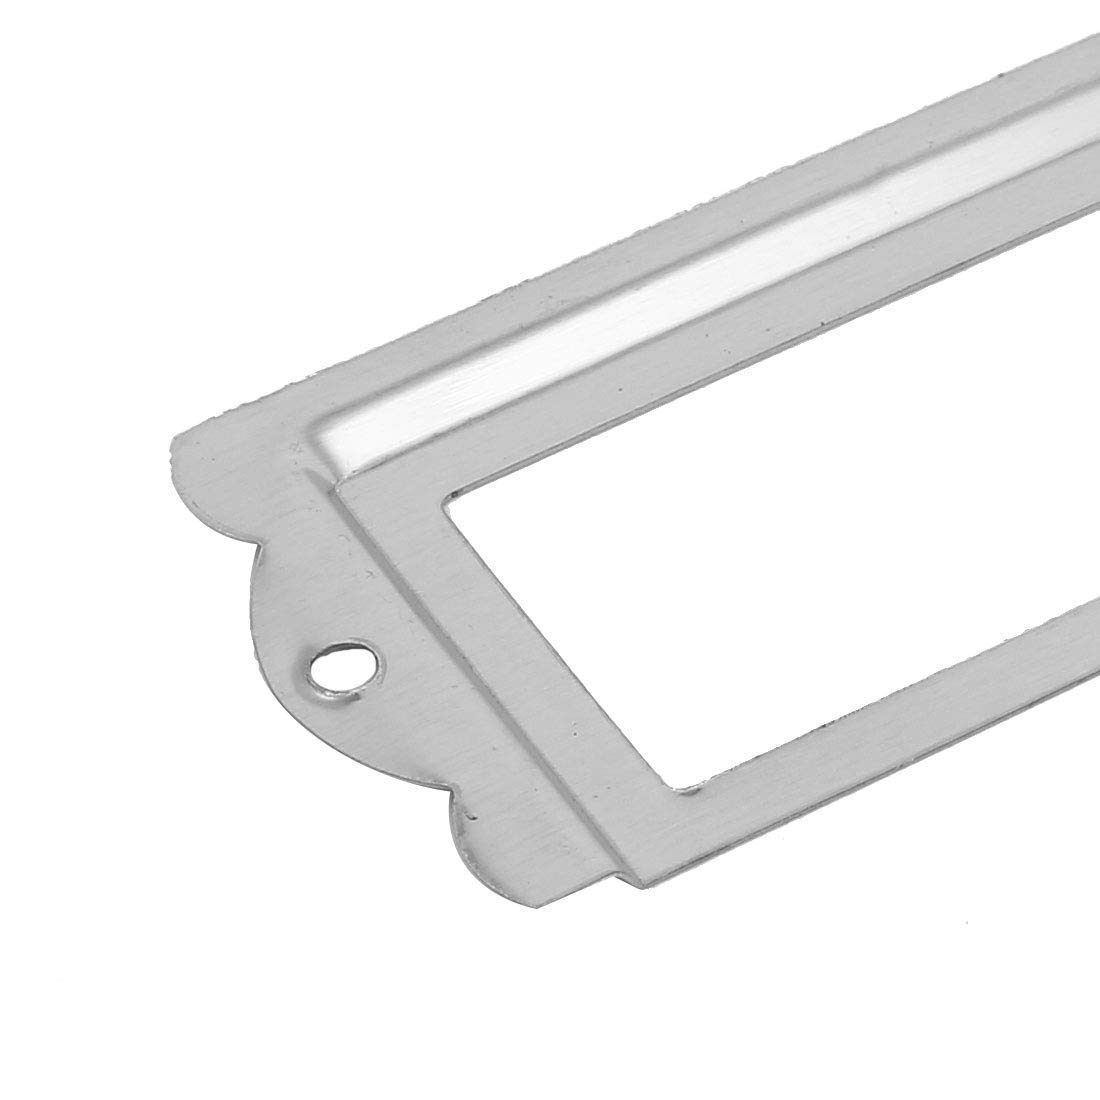 DealMux Library File Cabinet 85mm x 42mm Tag Label Holders Frames Silver Tone 15PCS